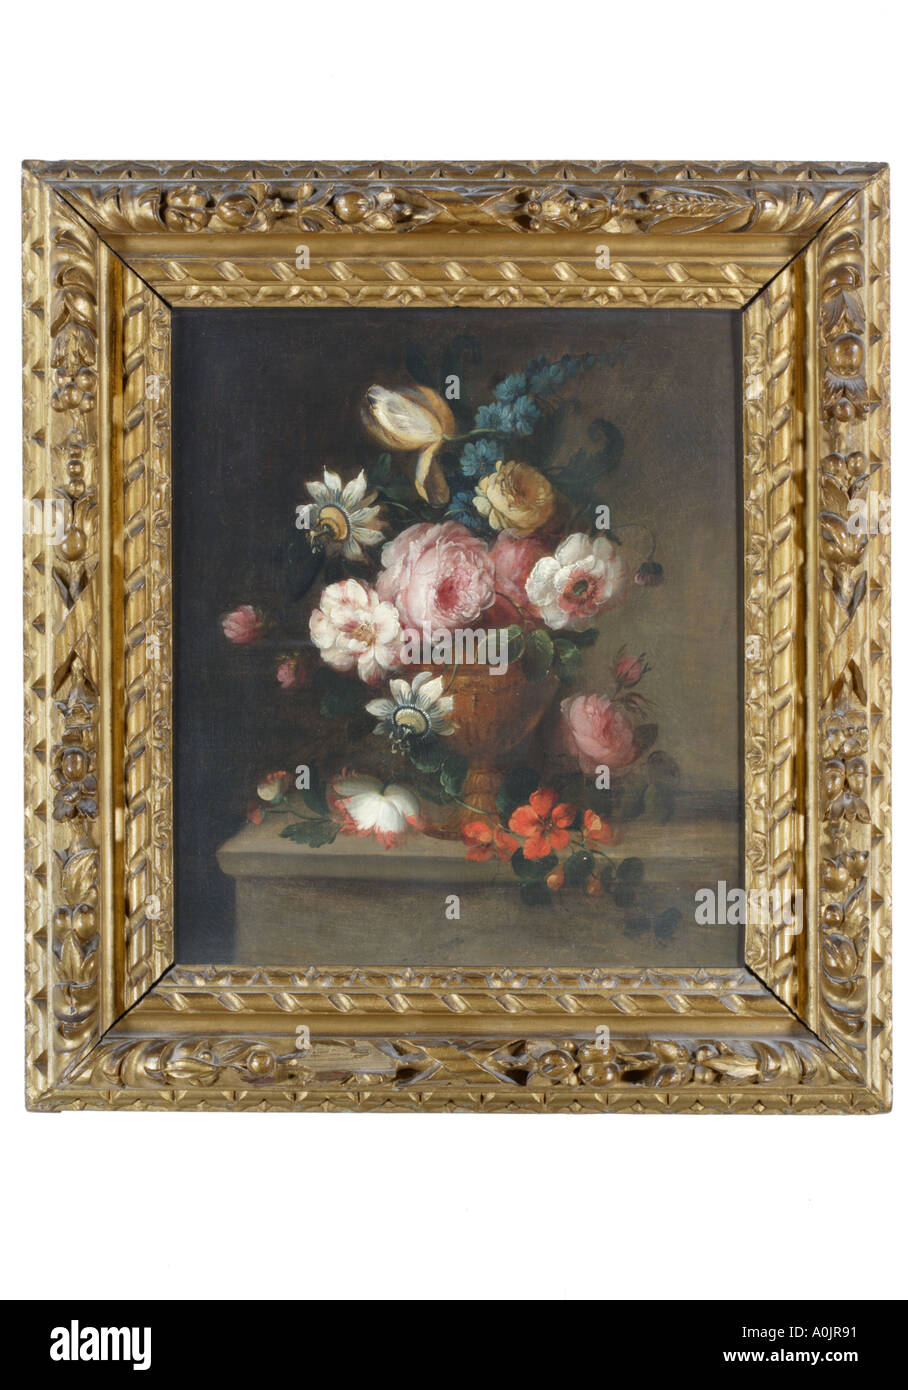 Oil Painting Of Flowers In A Vase Surrounded By A Gold